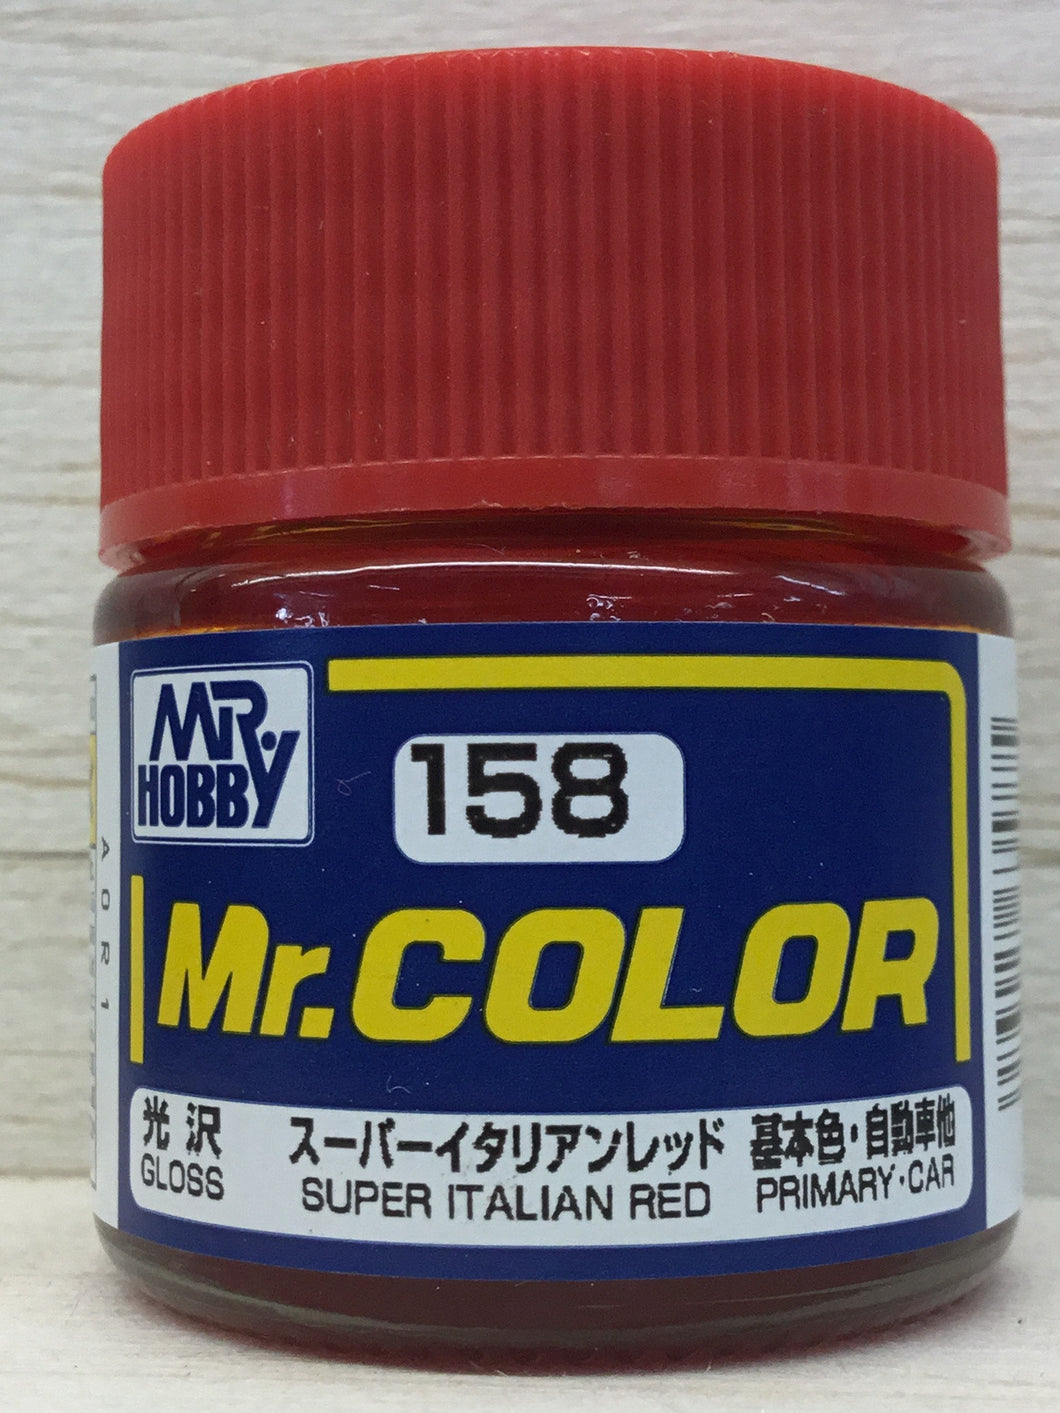 GUNZE MR COLOR C158 GLOSS SUPER ITALIAN RED